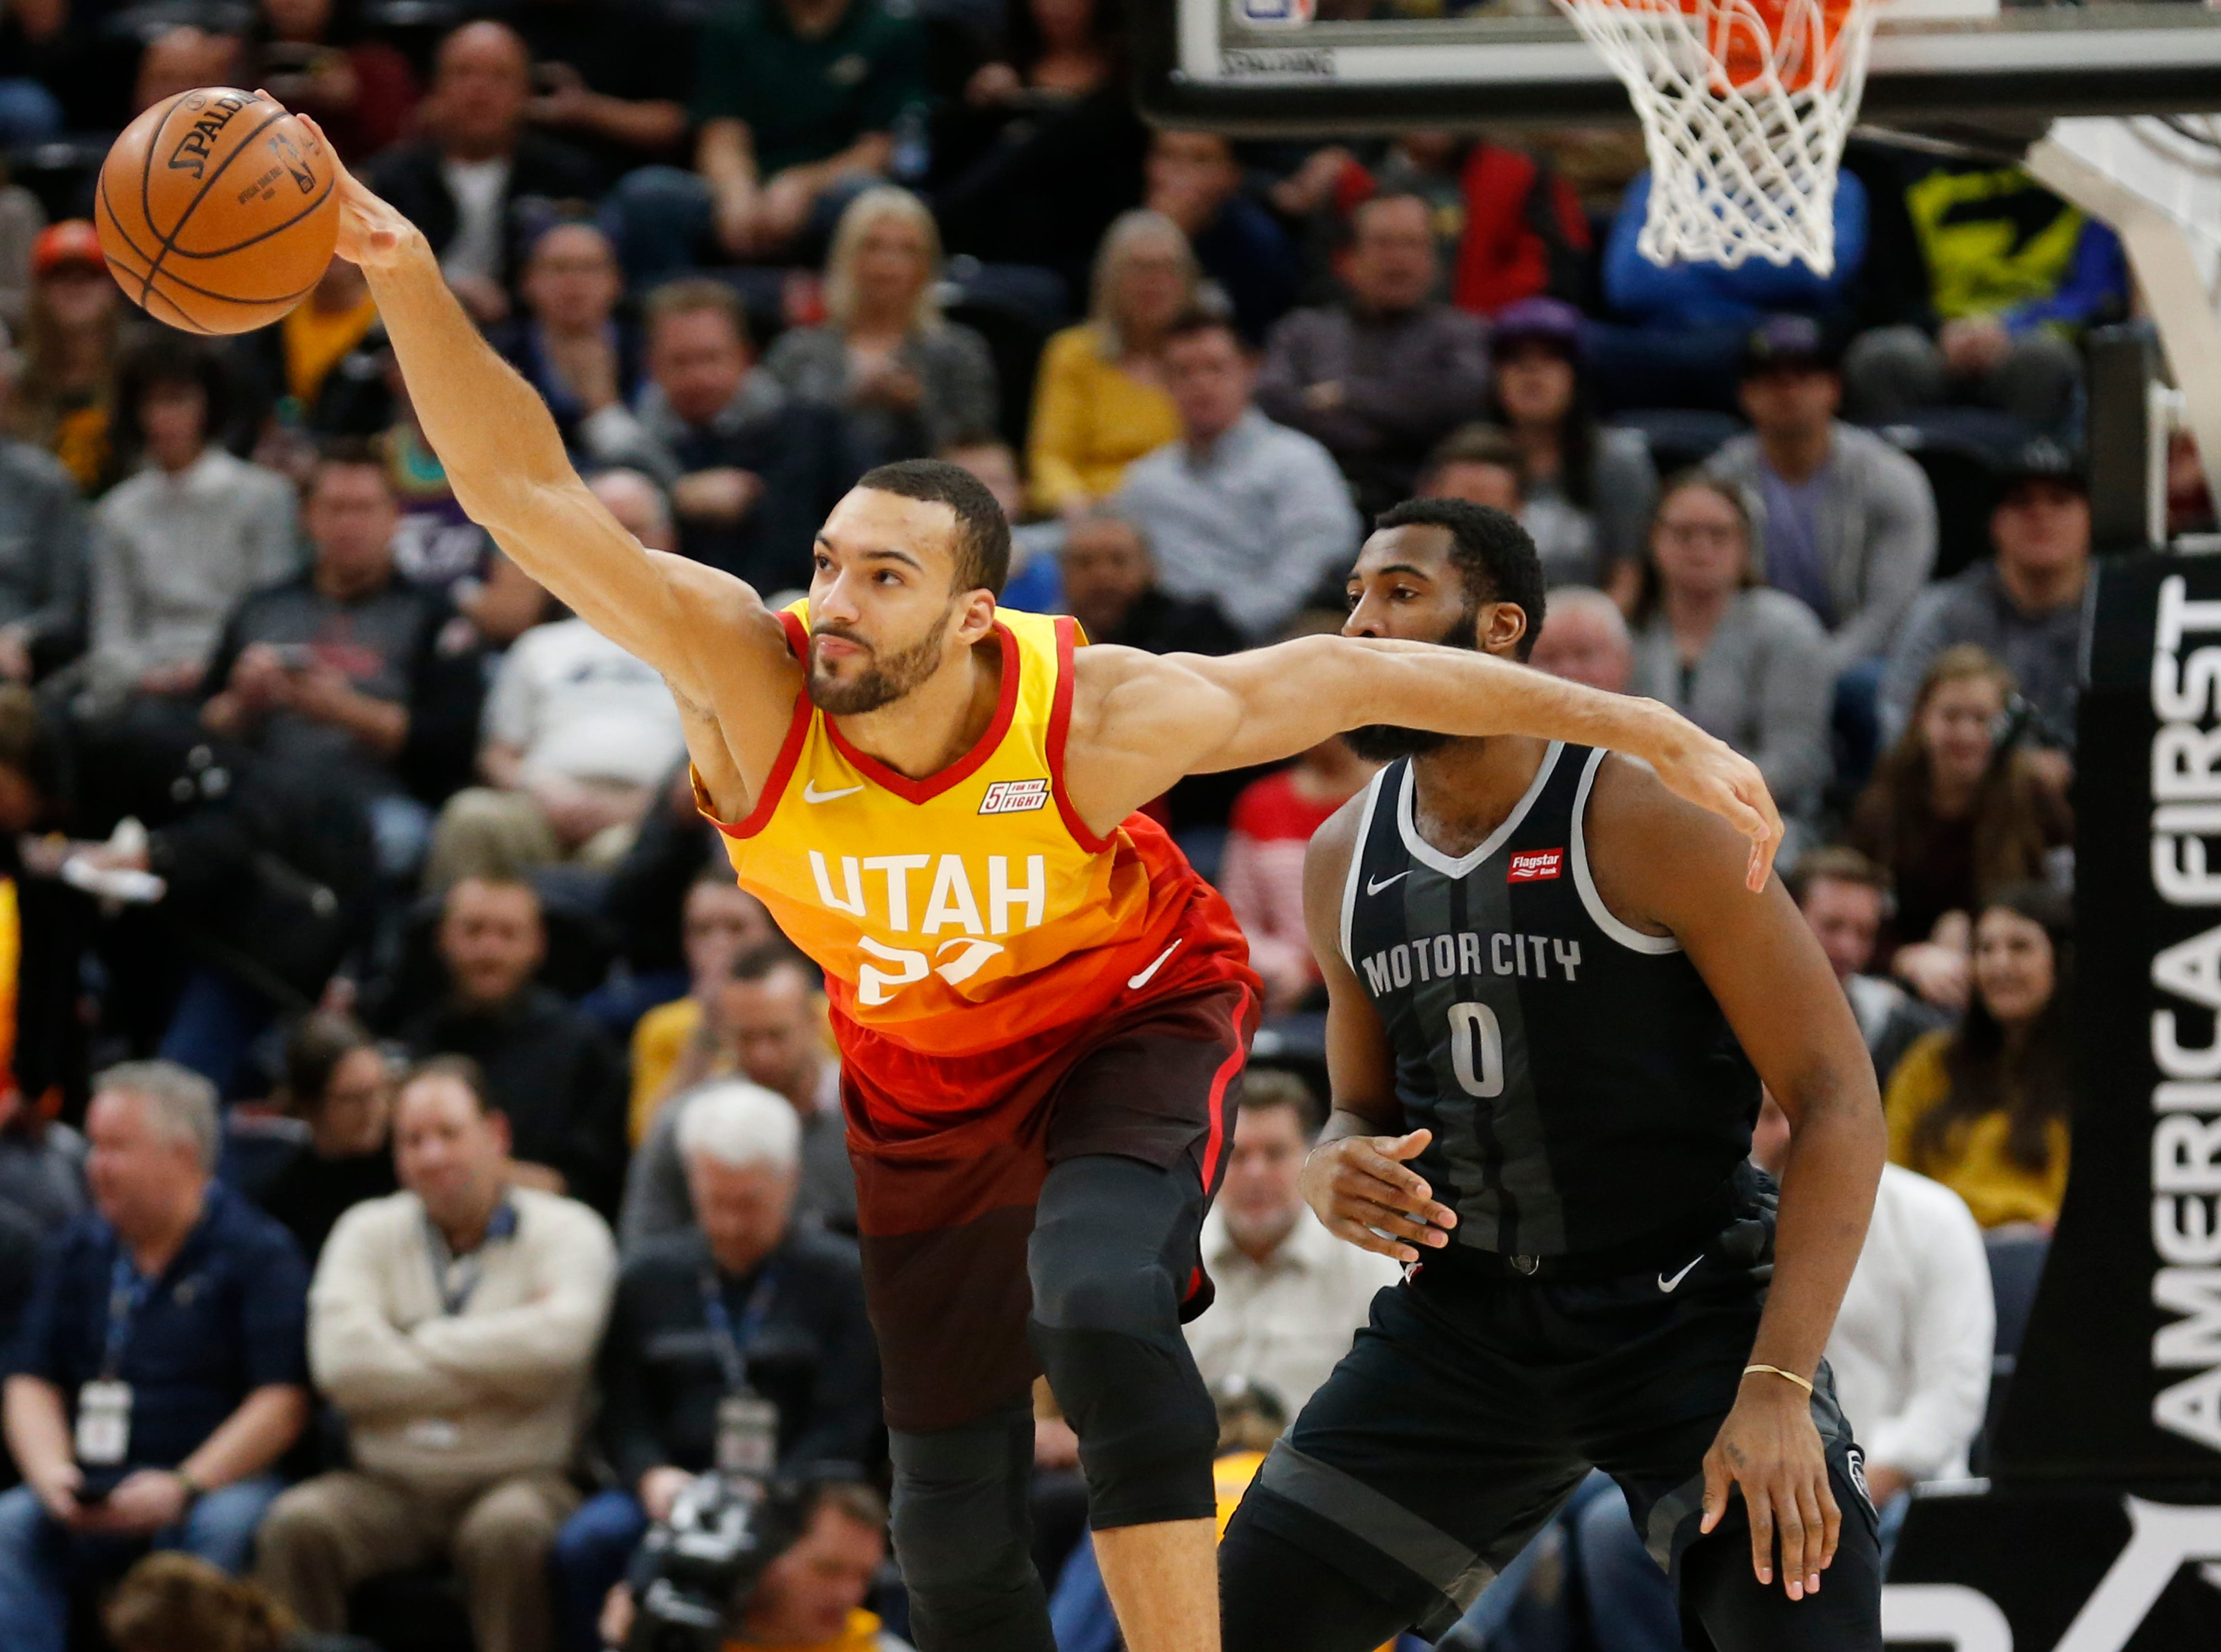 Utah Jazz center Rudy Gobert (27) reaches for the ball as Detroit Pistons center Andre Drummond (0) looks on during the first half of an NBA basketball game Monday, Jan. 14, 2019, in Salt Lake City. (AP Photo/Rick Bowmer)